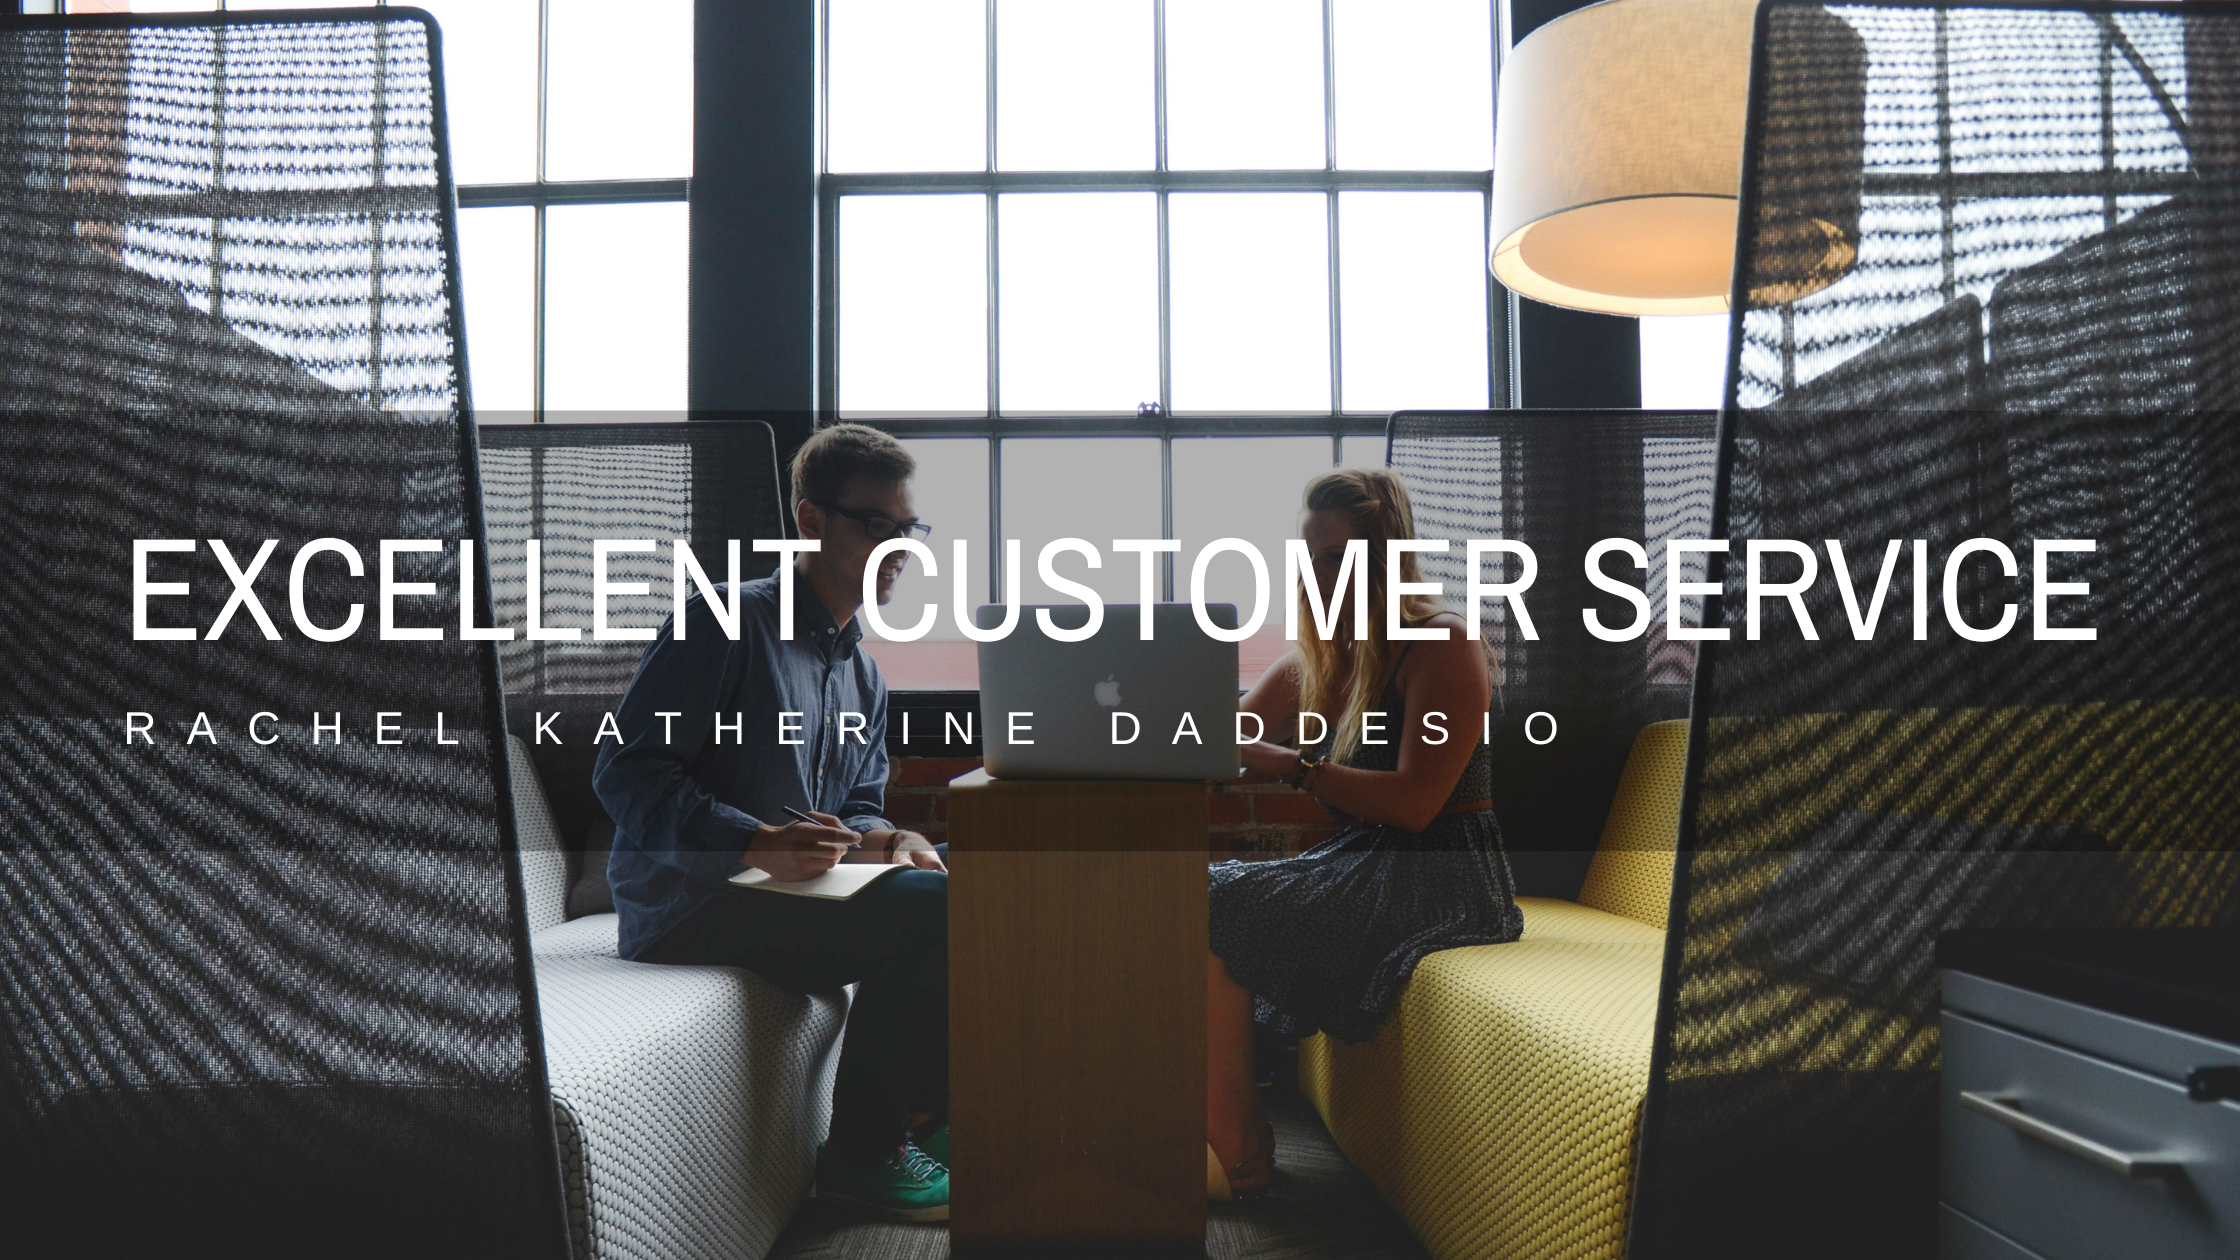 Financial Reporting and COVID-19: How Rachel Katherine Daddesio Maintains Excellent Customer Service During a Pandemic